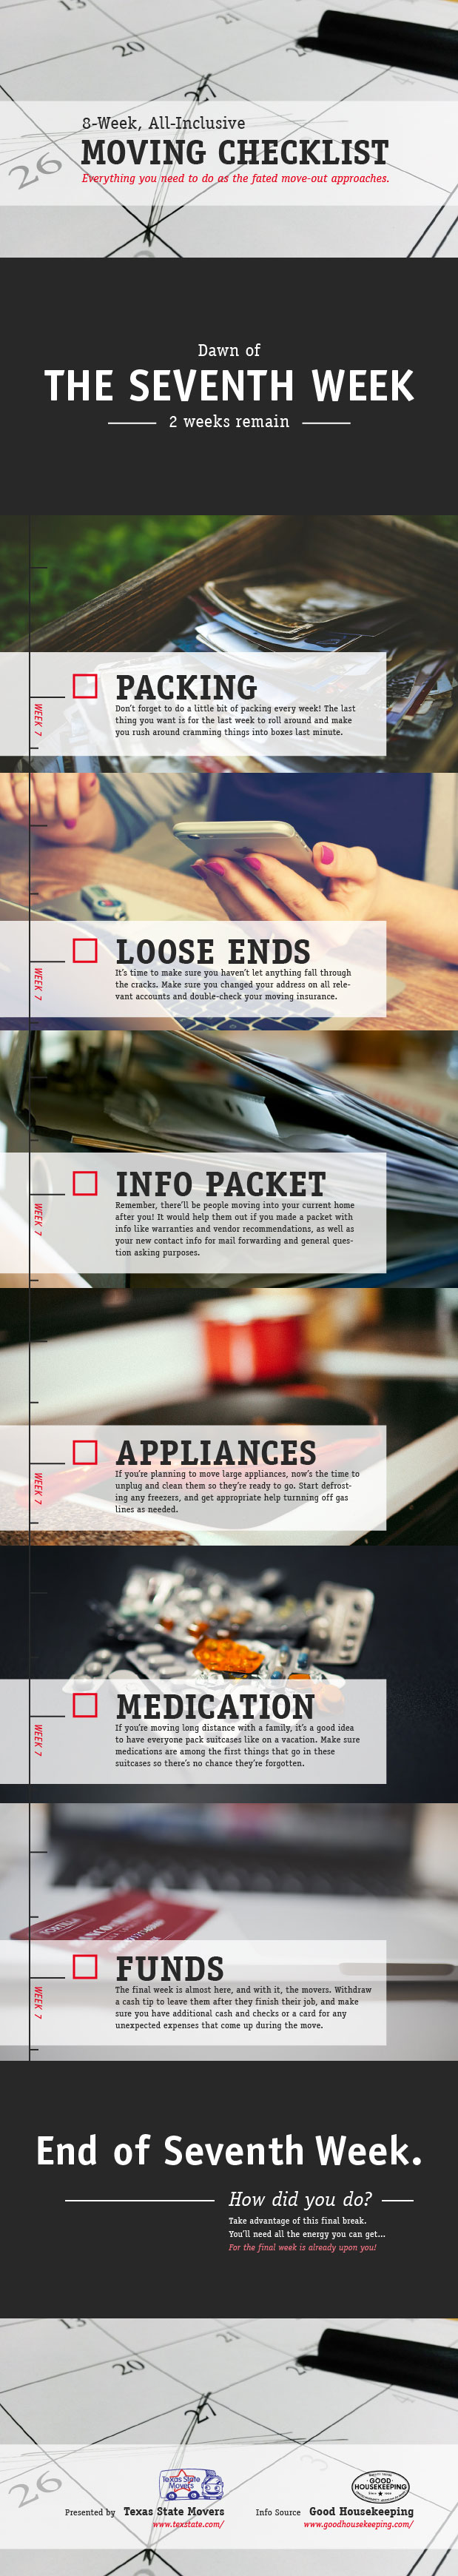 Moving Checklist - Part 7 of 8 Infographic